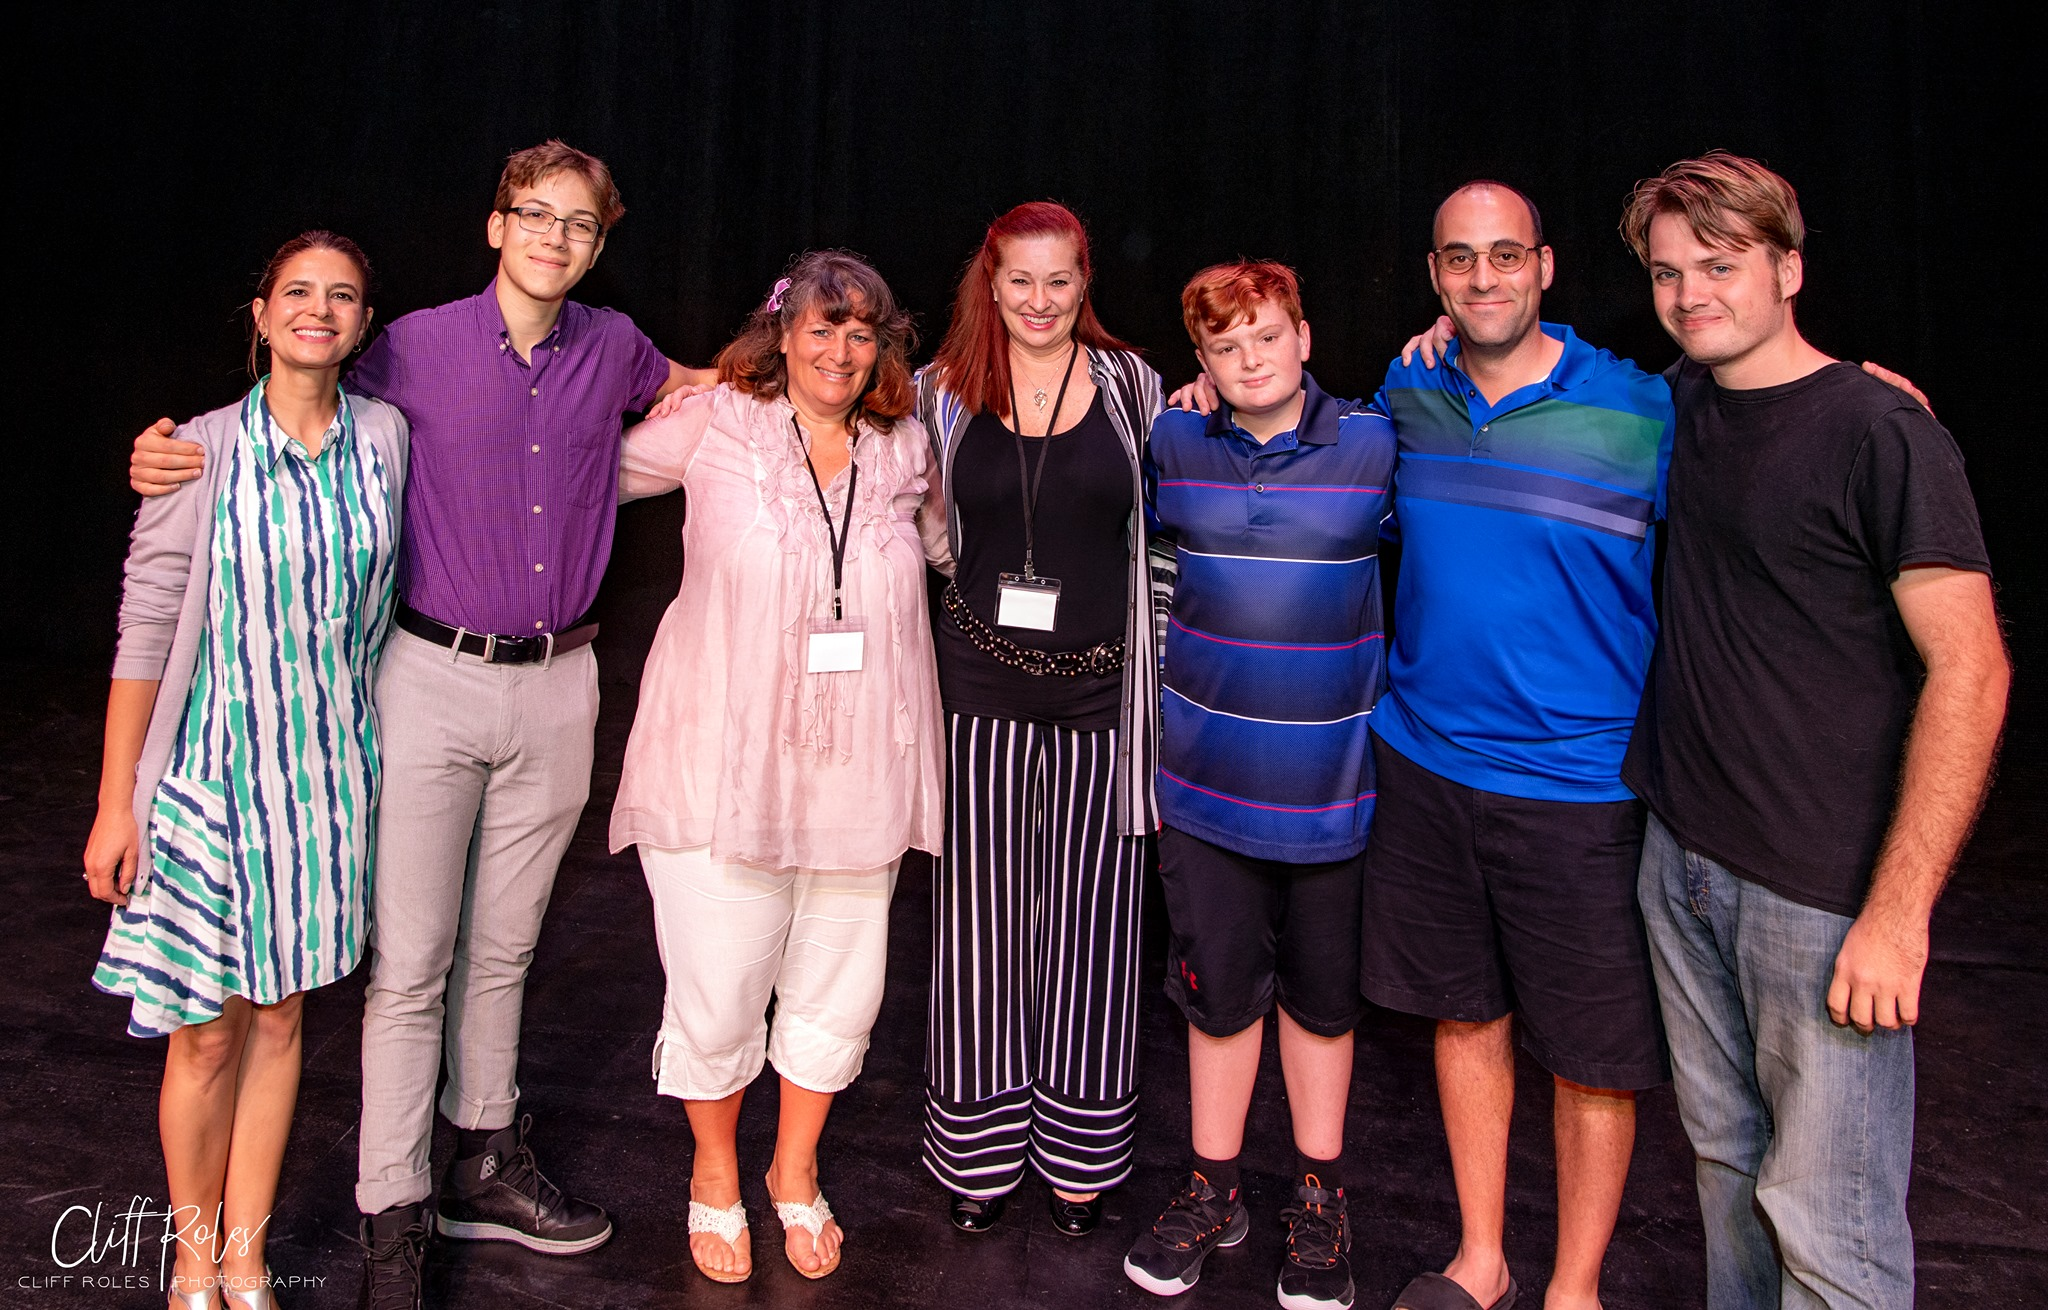 Winner, Best Play, Family By Numbers. Cast and Creatives: Julee Breehne (MOTHER), Ricky Bizarro (MIDDLE SON), Playwright Arianna Rose, Director Michele Strauss, Tyler Gevas (YOUNGEST SON), Scott Ehrenpreis (FATHER), and Ren Pearson (OLDEST SON). Photo by Cliff Roles.